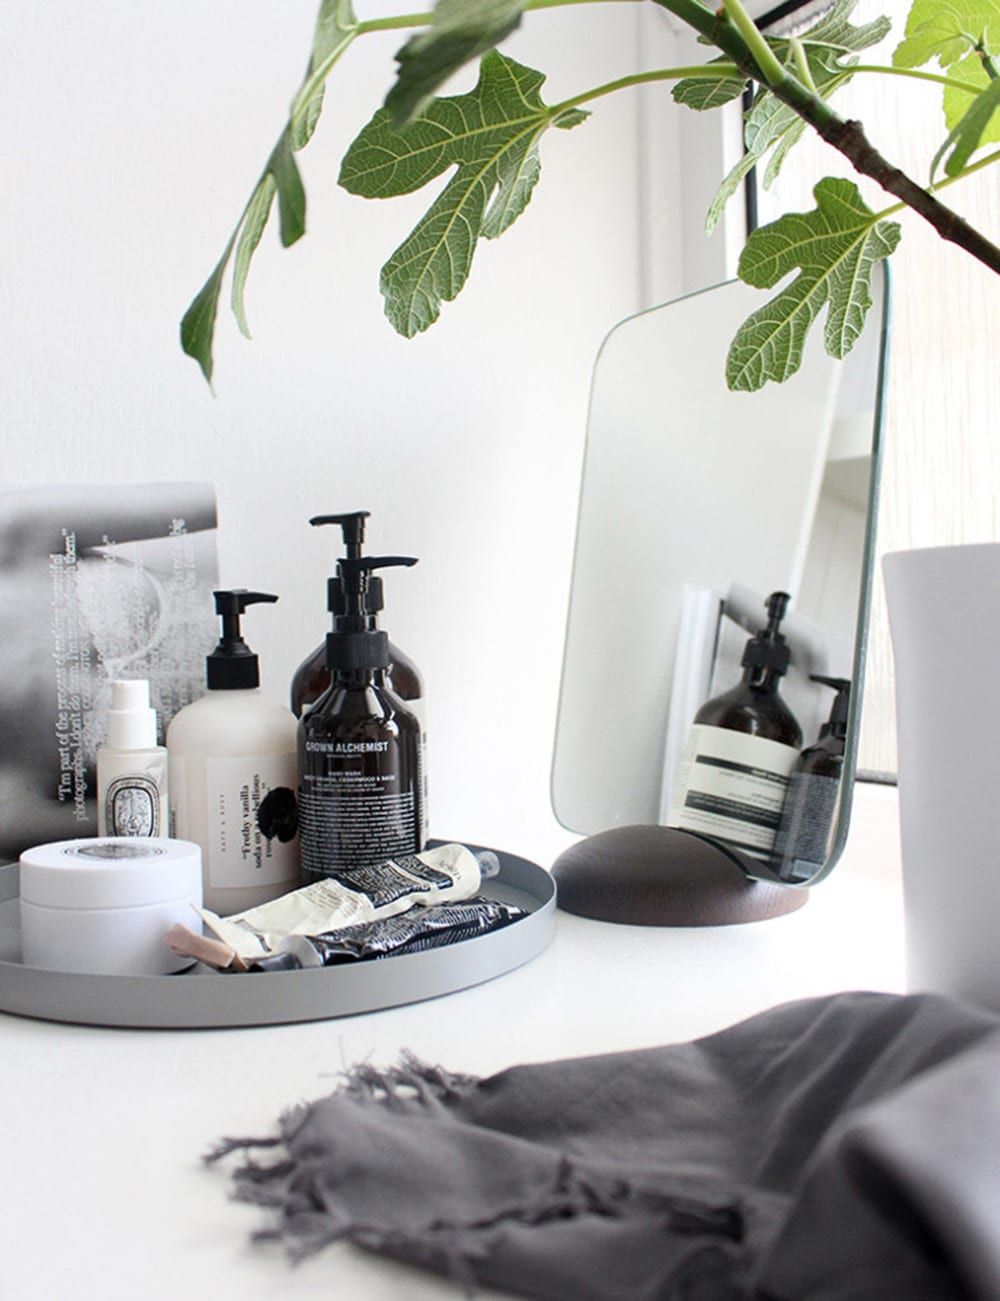 Styling Tips In Keeping With The Current Fashion Trends In: Minimal Bathroom Styling Tips